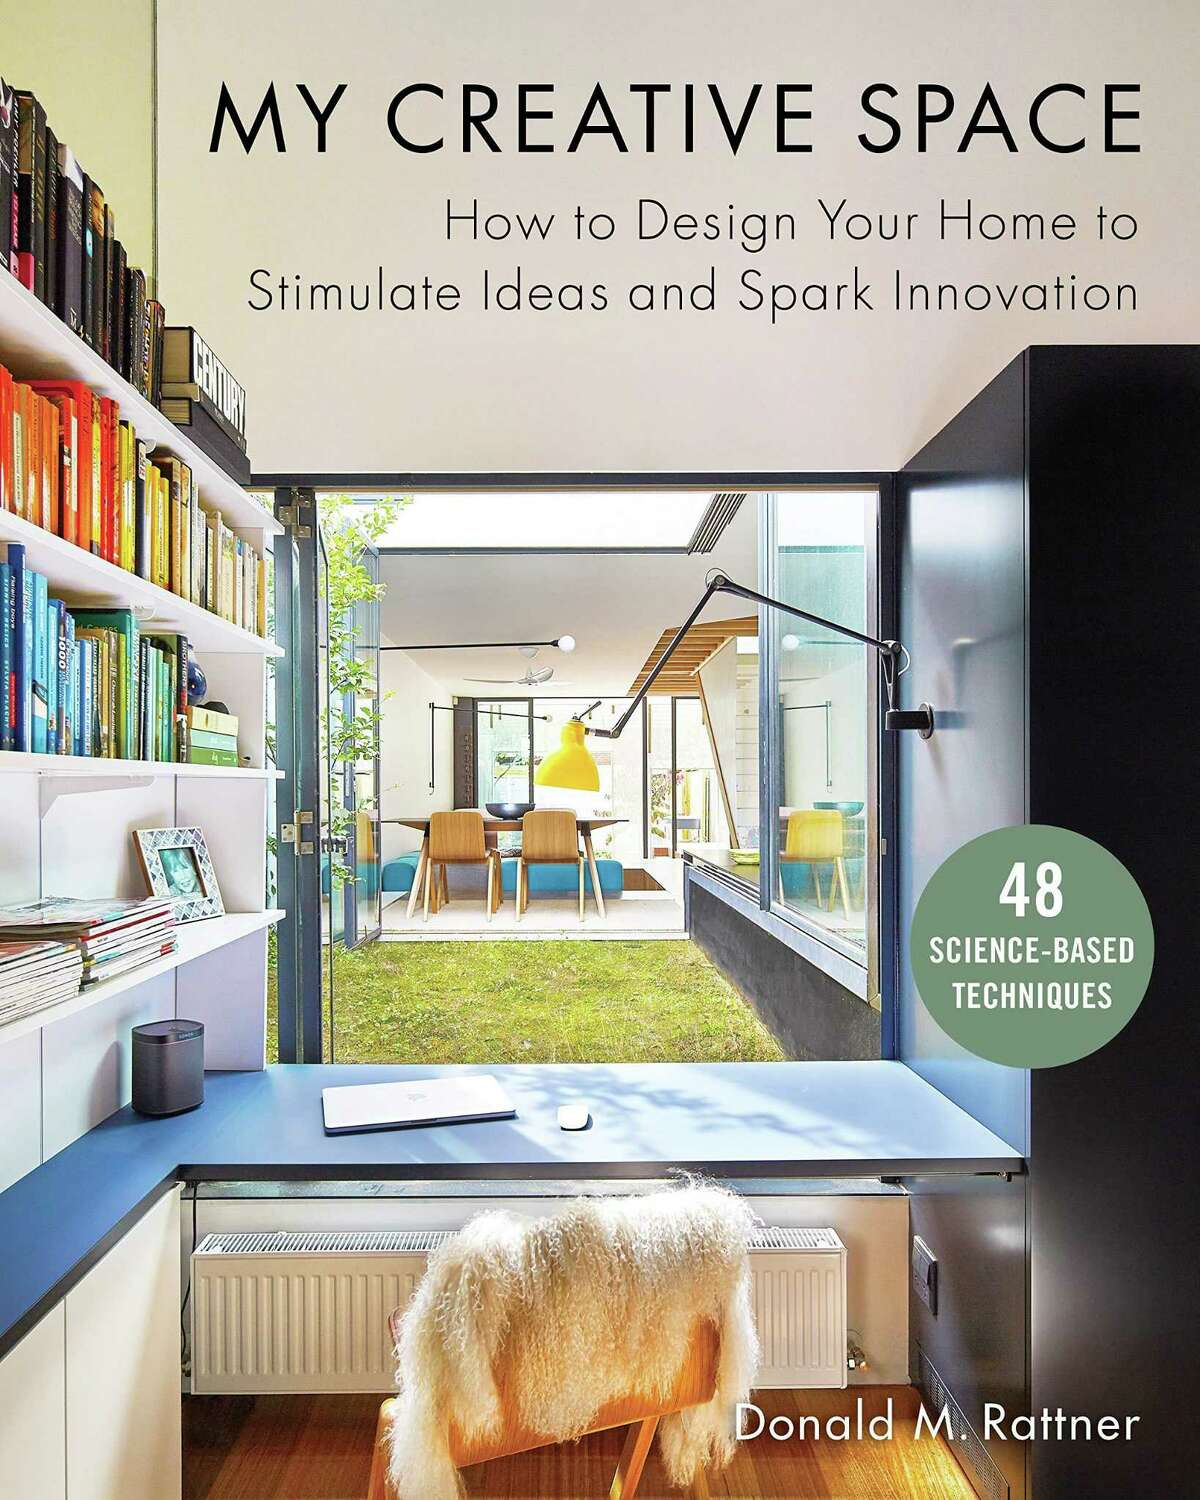 Architect and author Donald M. Rattner will speak about his latest book, My Creative Space: How to Design Your Home to Stimulate Ideas and Spark Innovation. Contributed photo